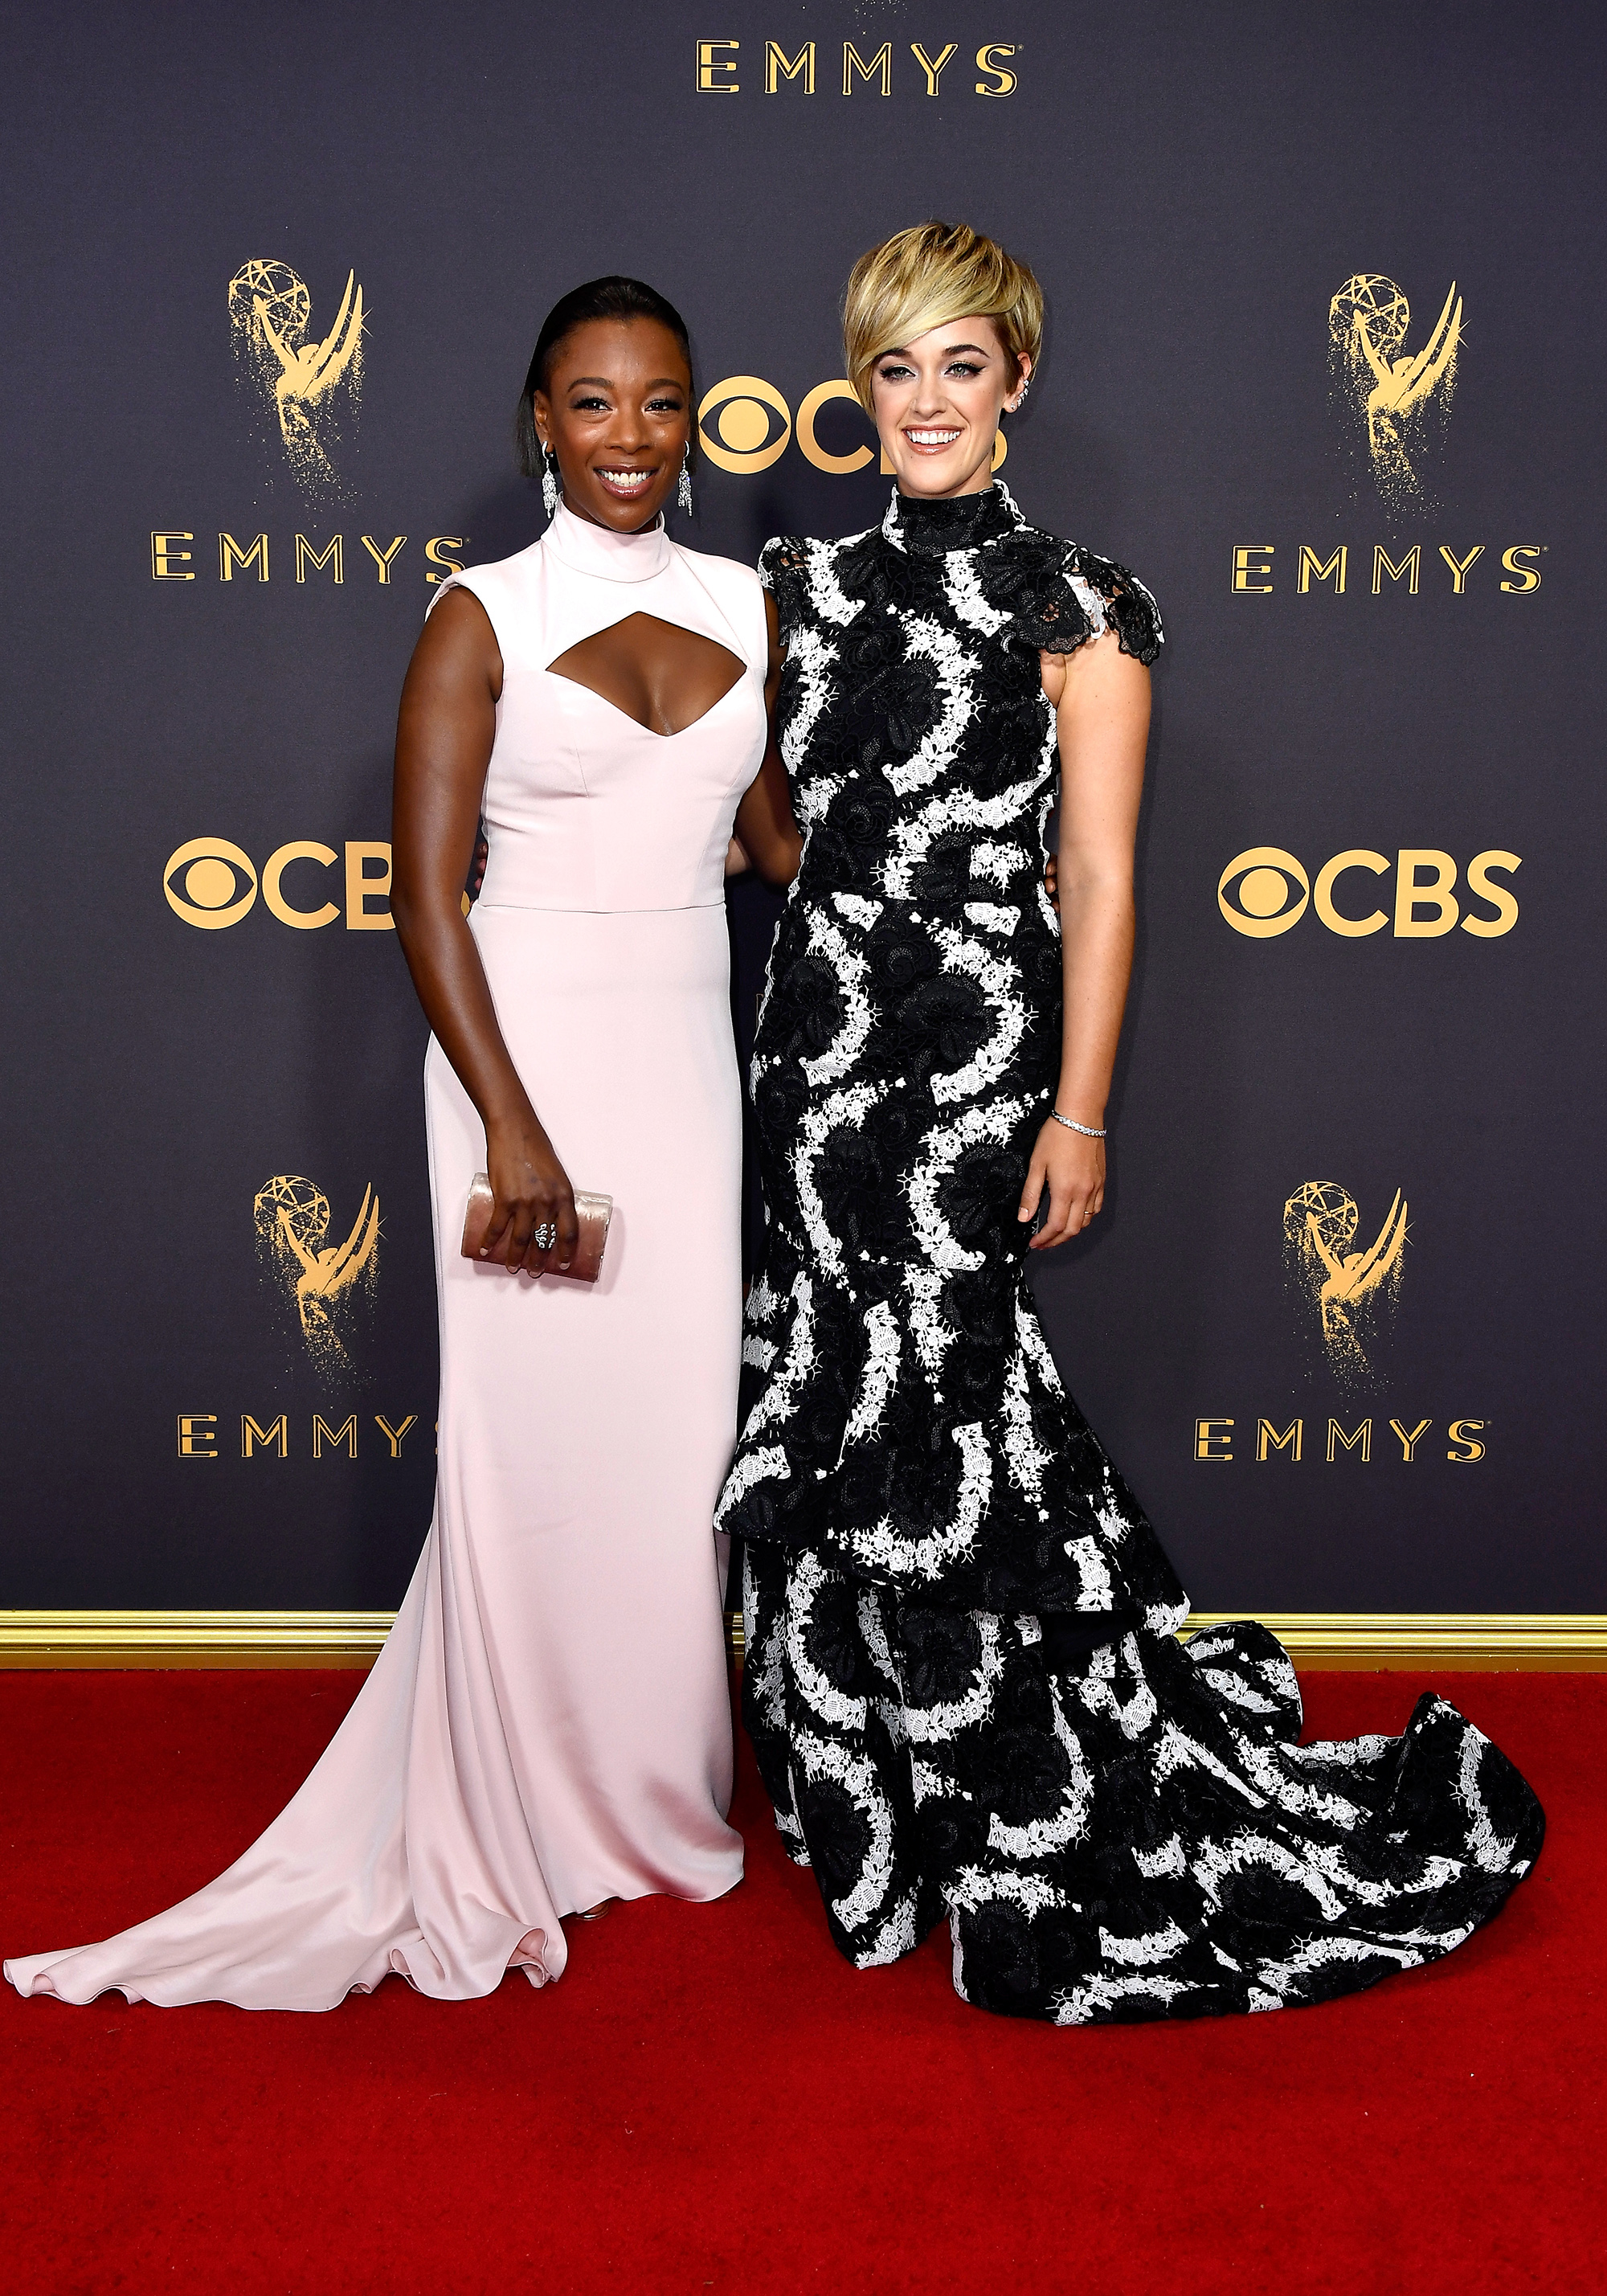 Samira Wiley and Lauren Morelli Emmys 2017